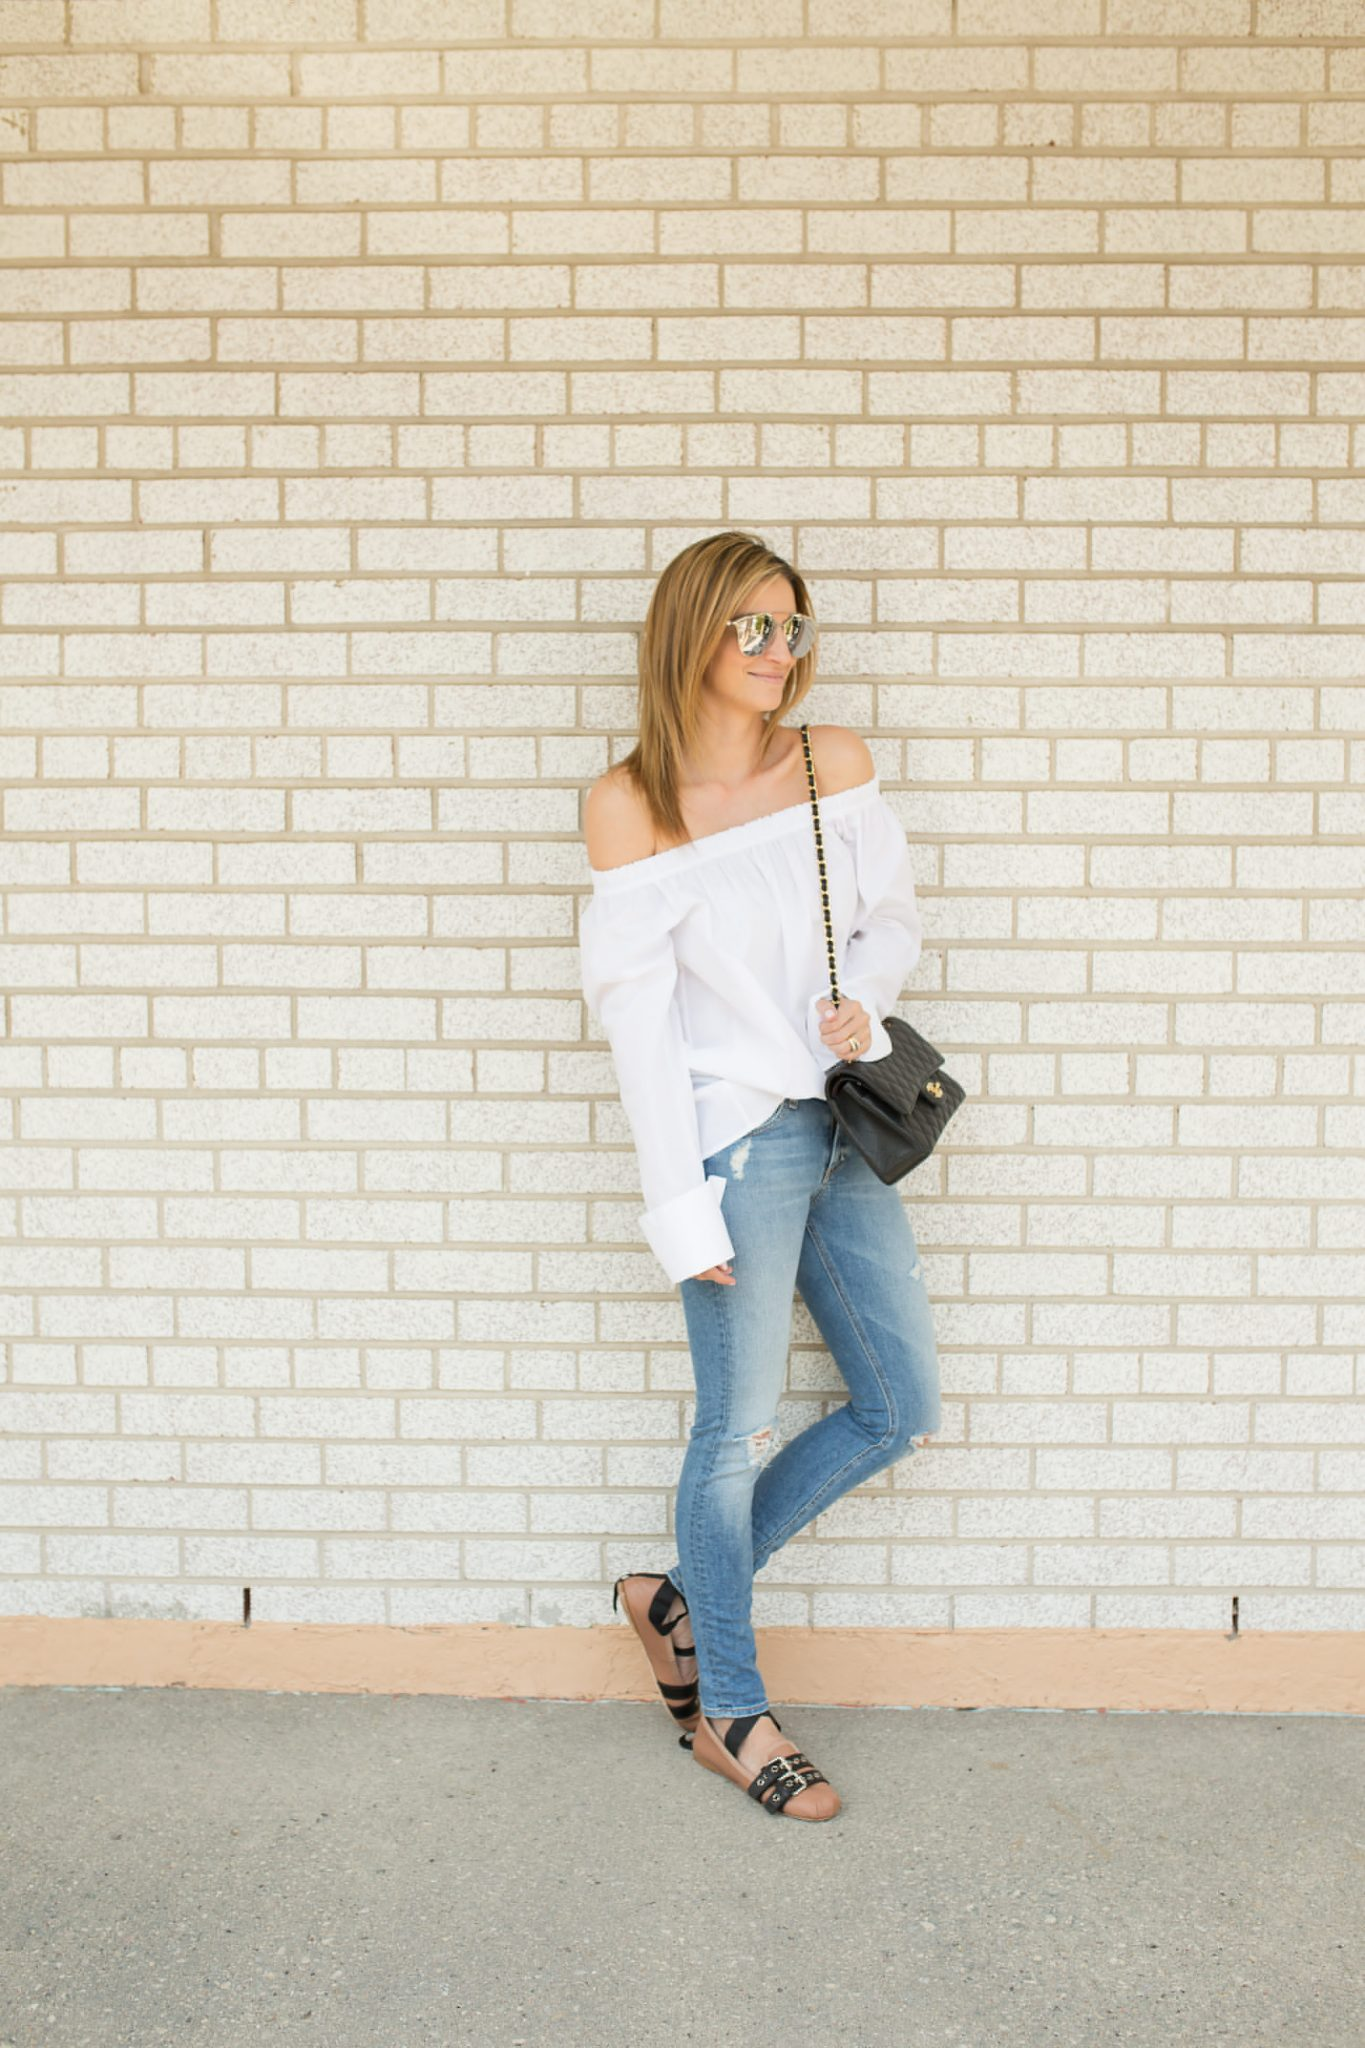 Sparkleshinylove #HumansofYV Yorkville Village off the shoulder white top, Rag & Bone Distressed Jeans from TNT, Miu Miu double buckle nude loafers